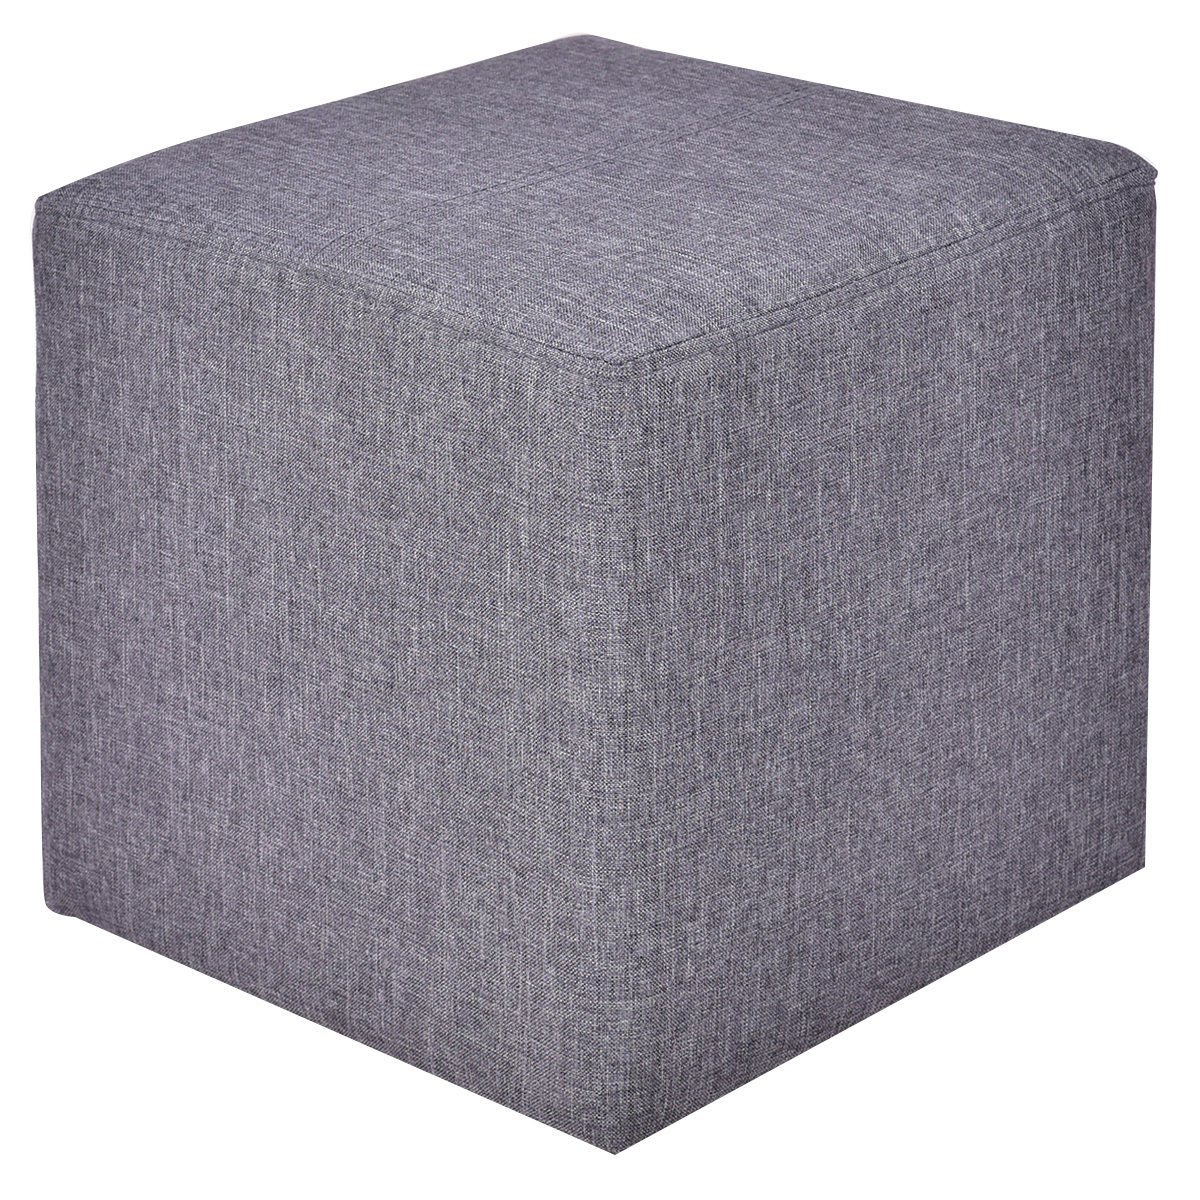 Ottoman Storage Box Square Foot Stool Footstools Seat Wood Frame Footrest Linen Gray